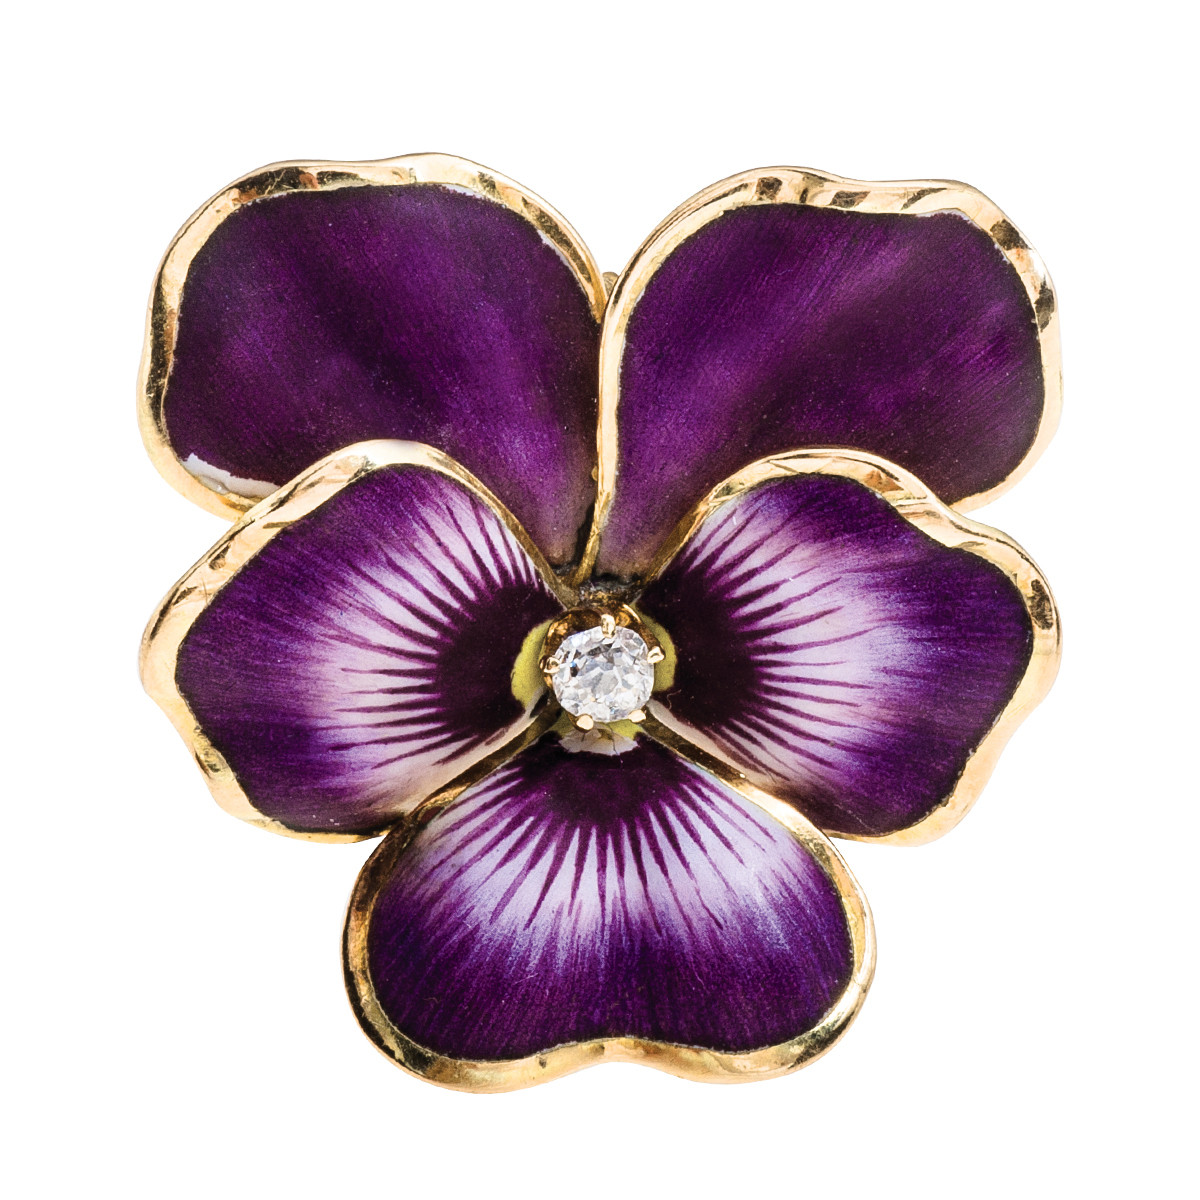 Vintage Diamond & Enamel Pansy Ring